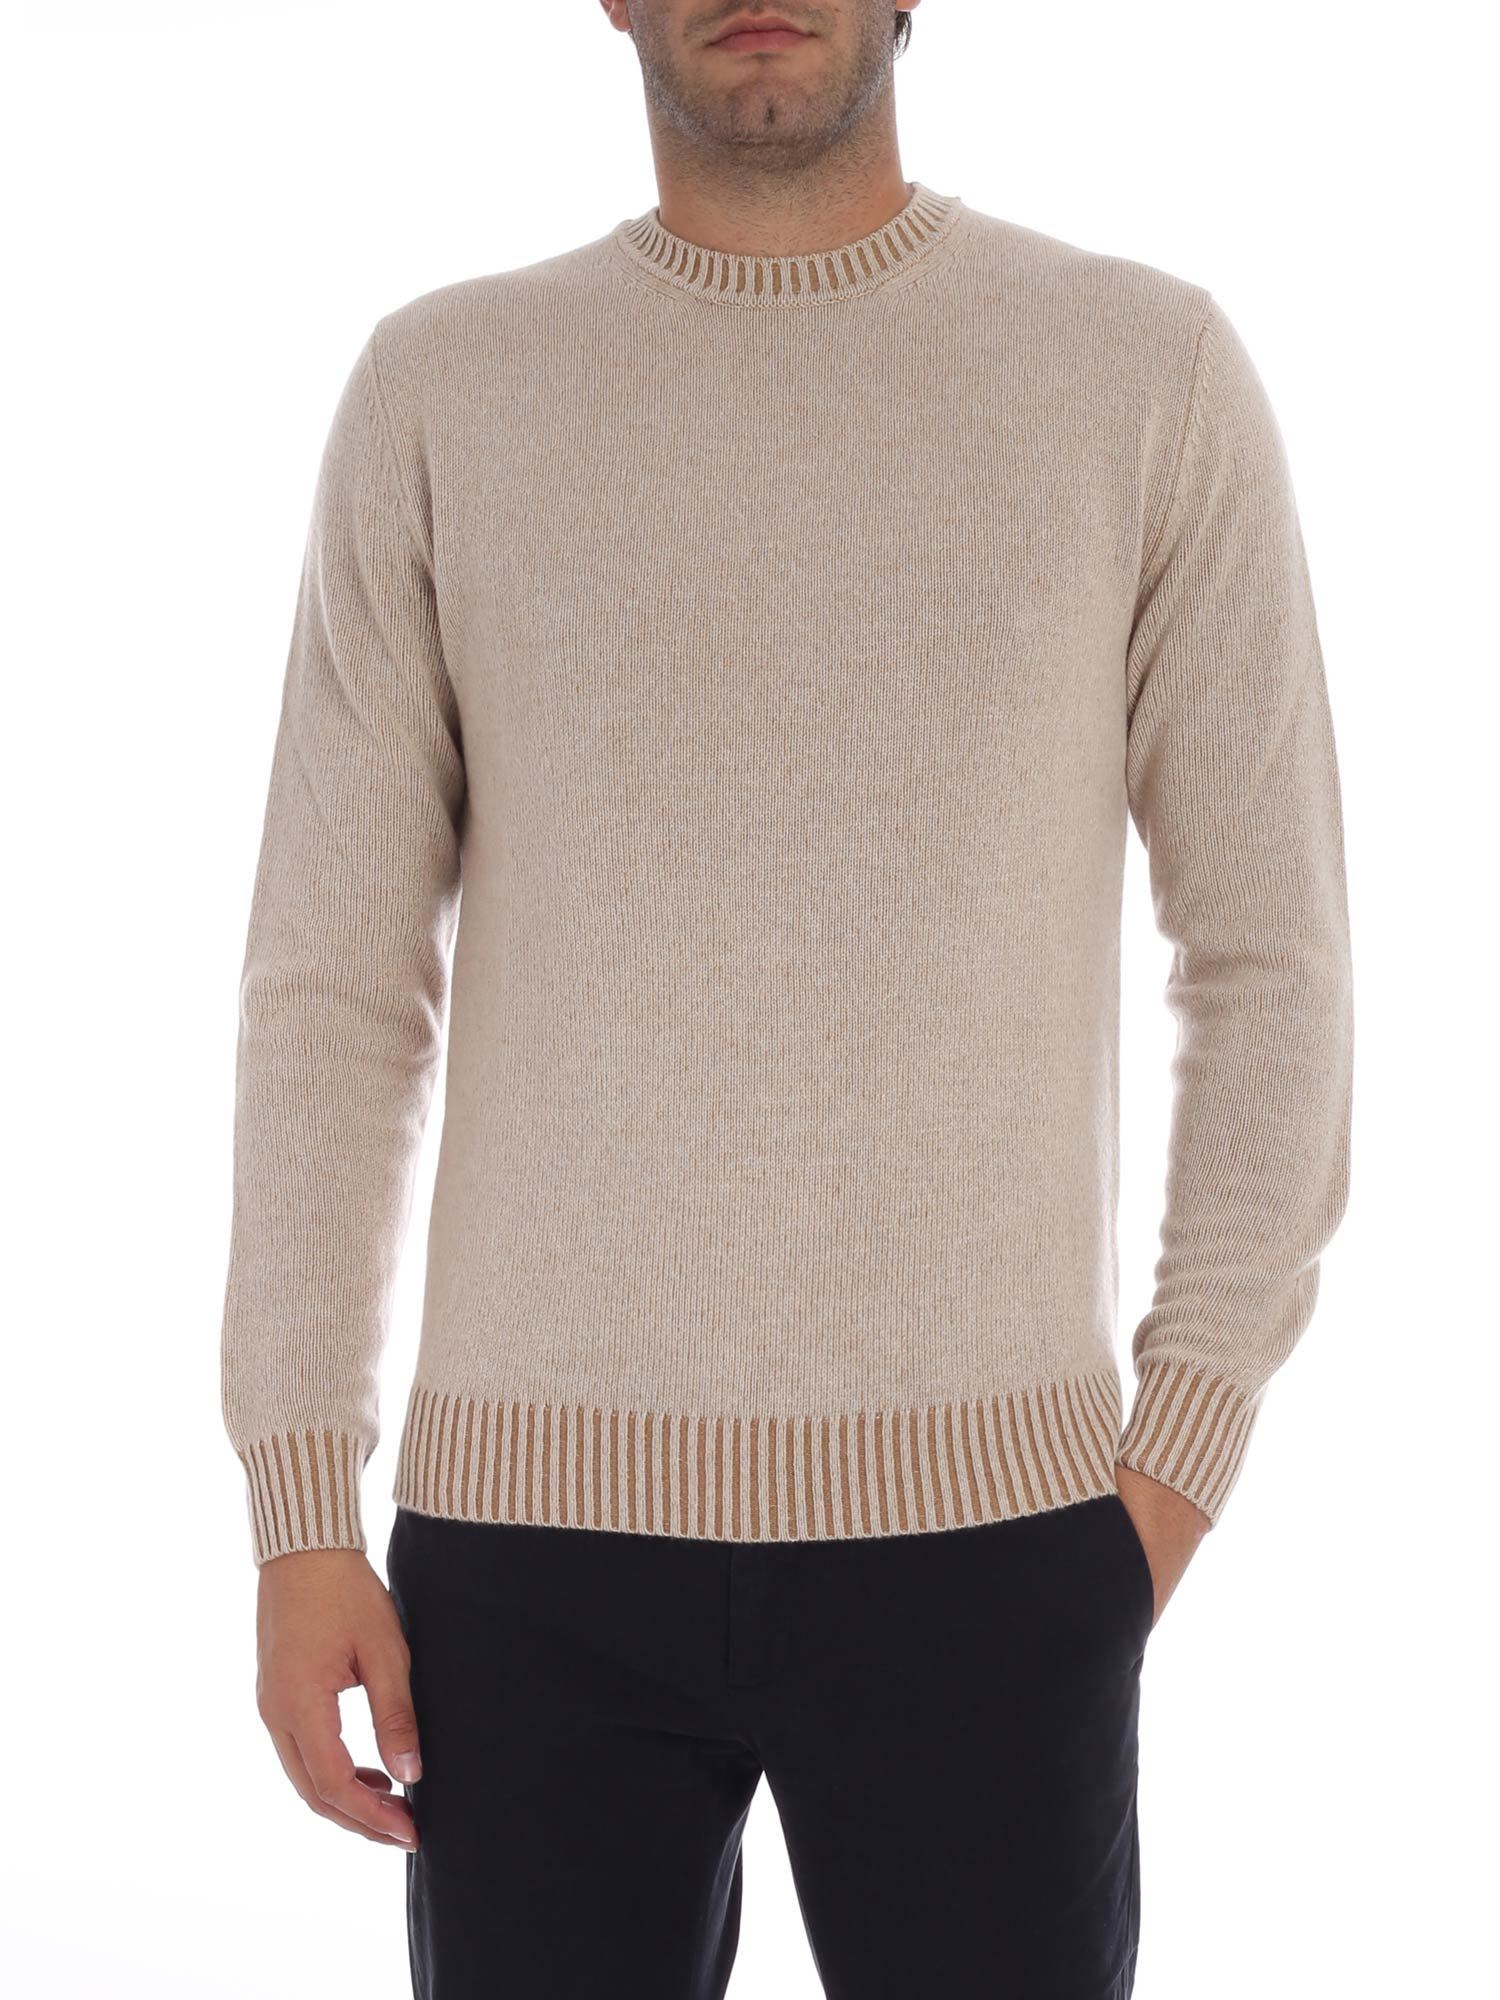 LUIGI BORRELLI Crew Neck Jumper in Beige